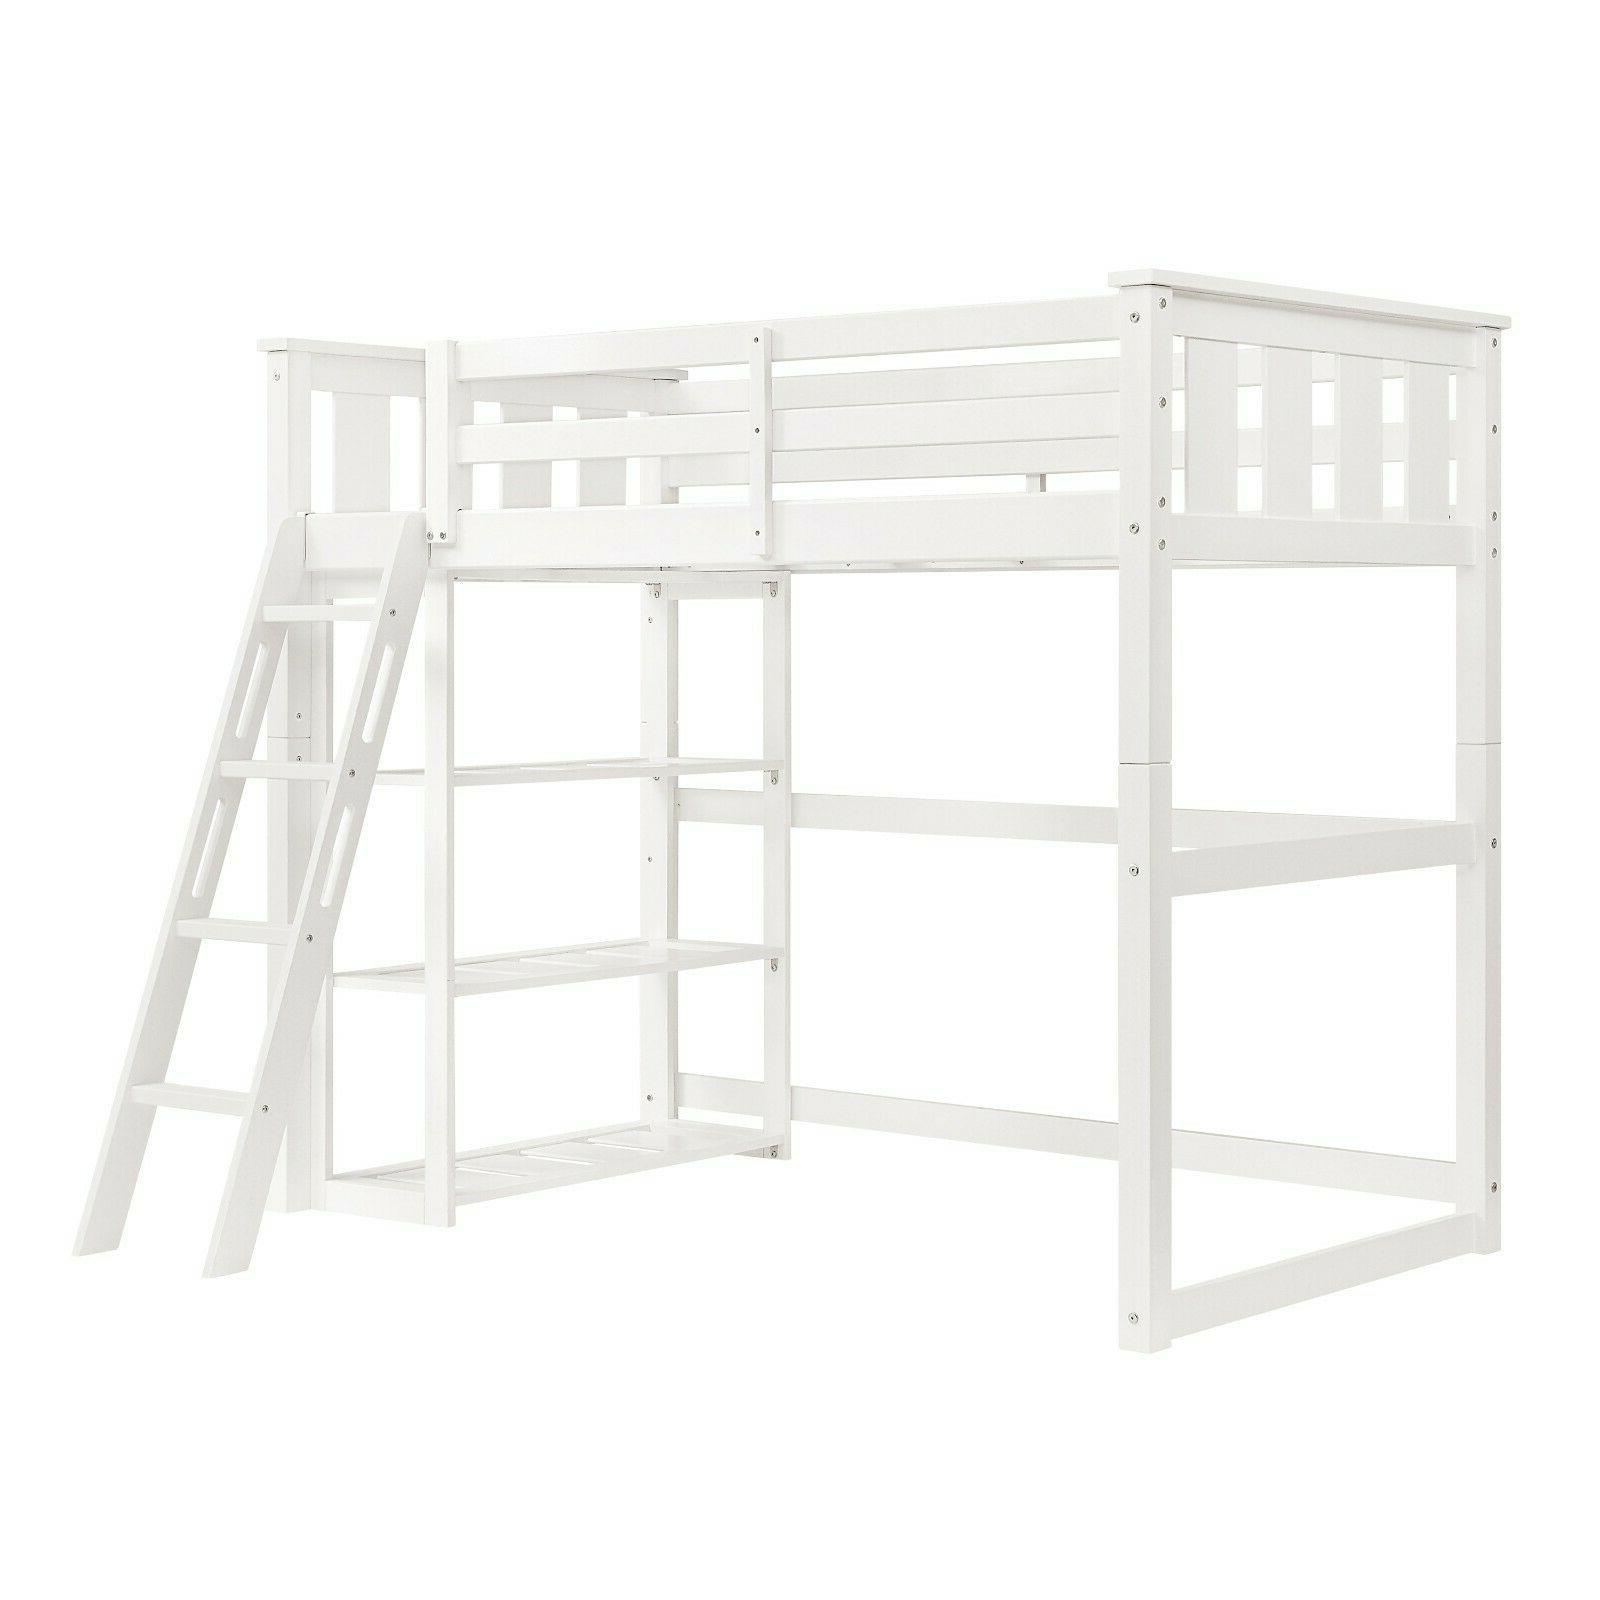 Twin Bunk Bed Wooden Teens Child White